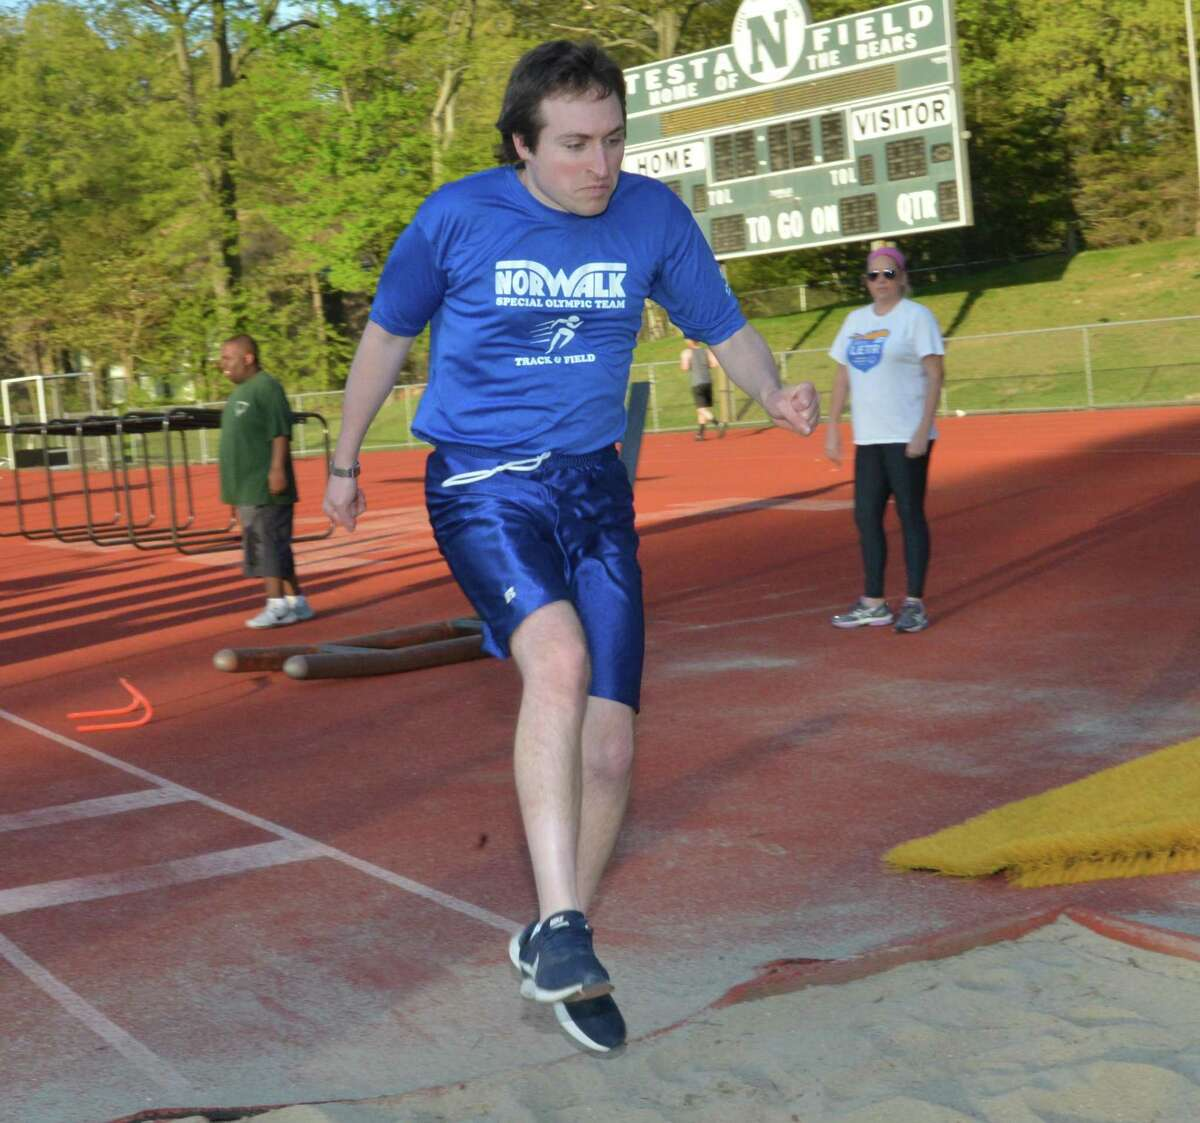 Alan Holomakoff takes a turn at the long jump while training with the Norwalk Special Olympics team at Norwalk high on Wednesday May 9, 2018 in Norwalk Conn.